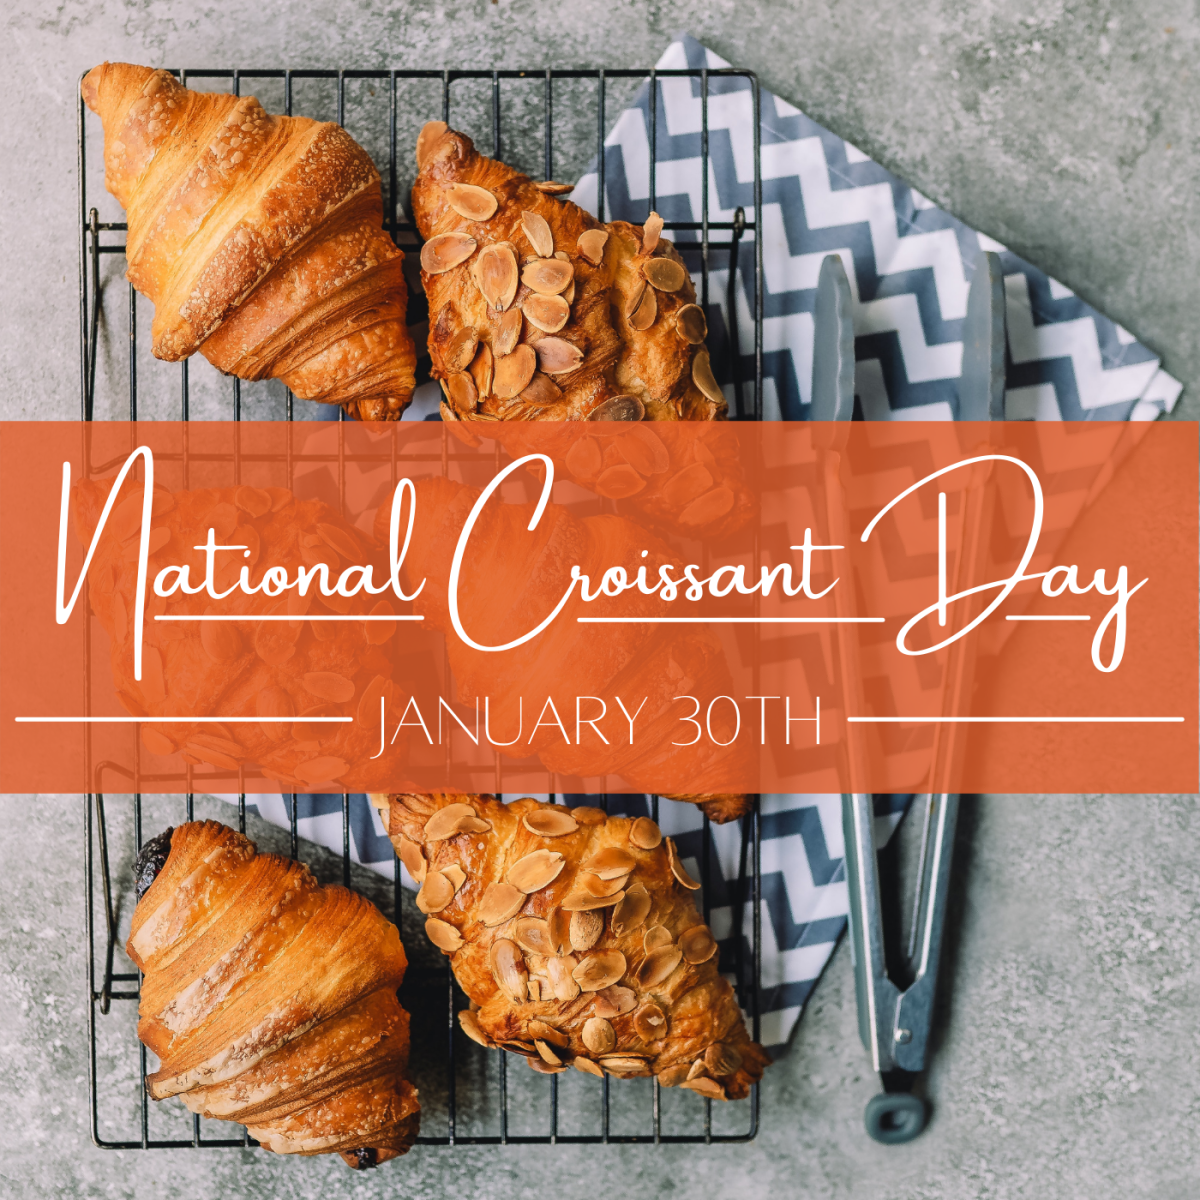 January 30th is National Croissant Day. How will you celebrate?